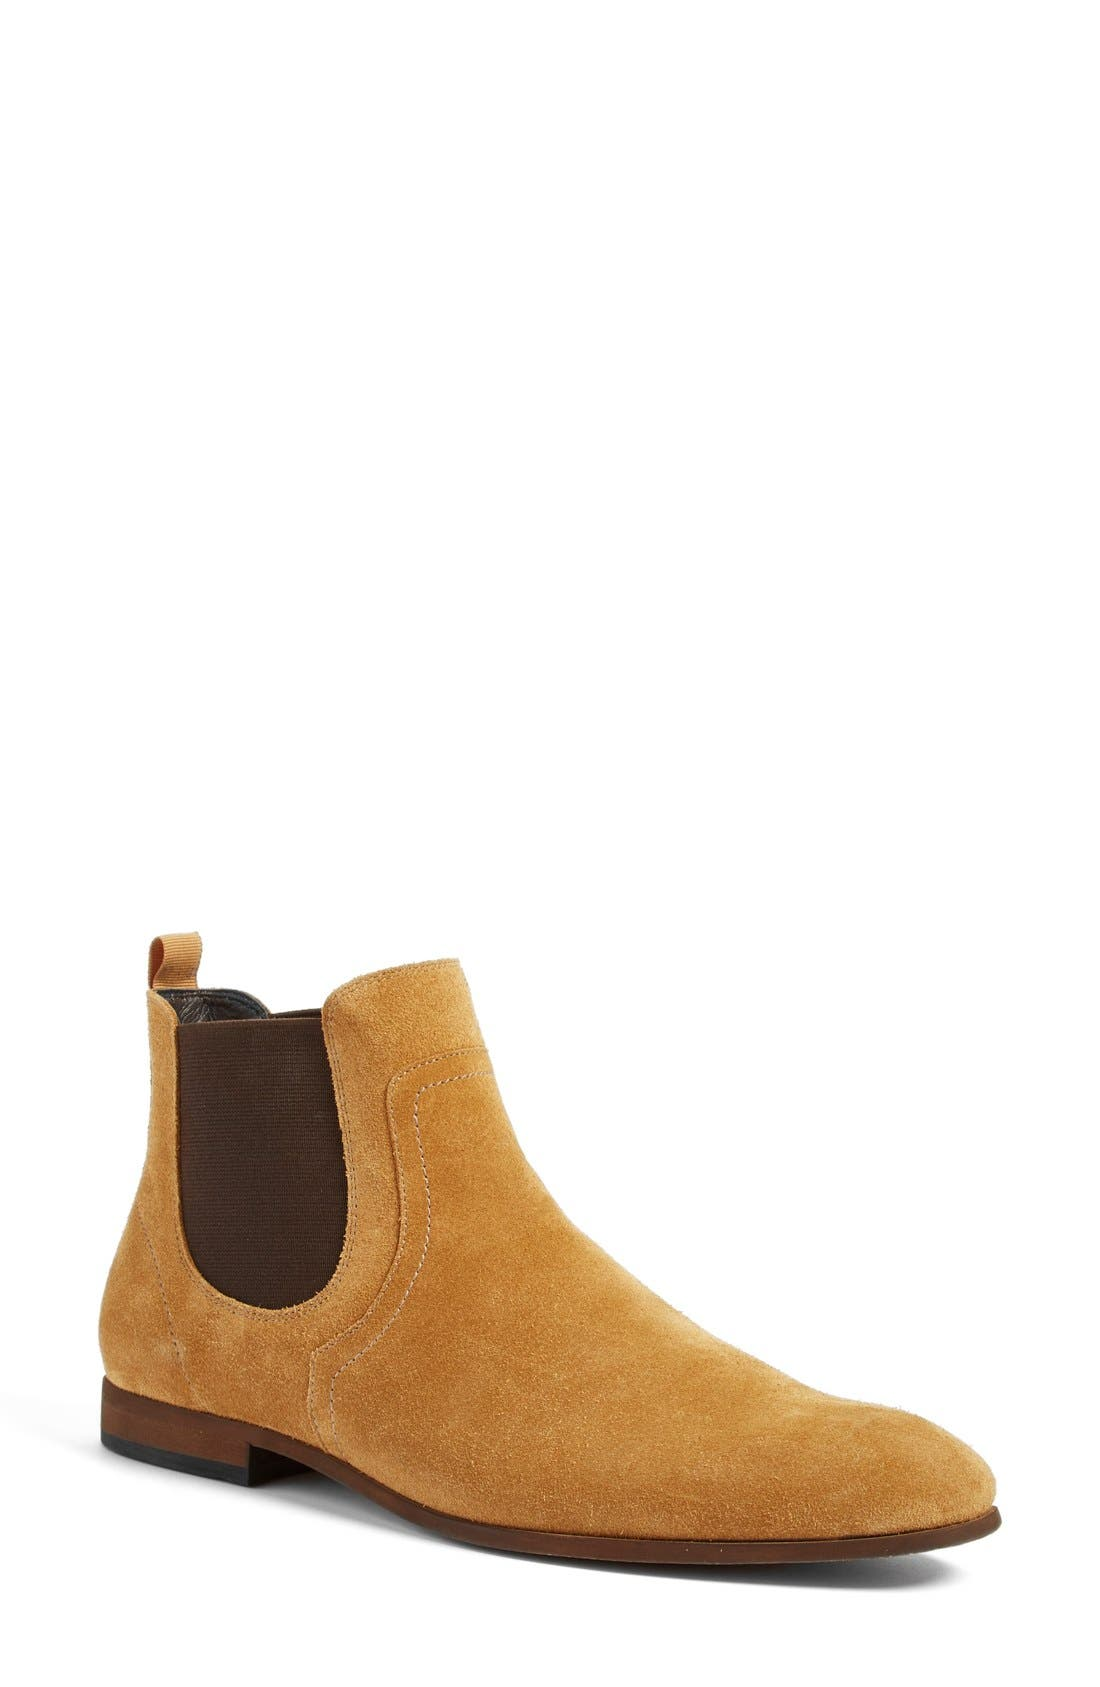 Alternate Image 1 Selected - The Rail Brysen Chelsea Boot (Men)